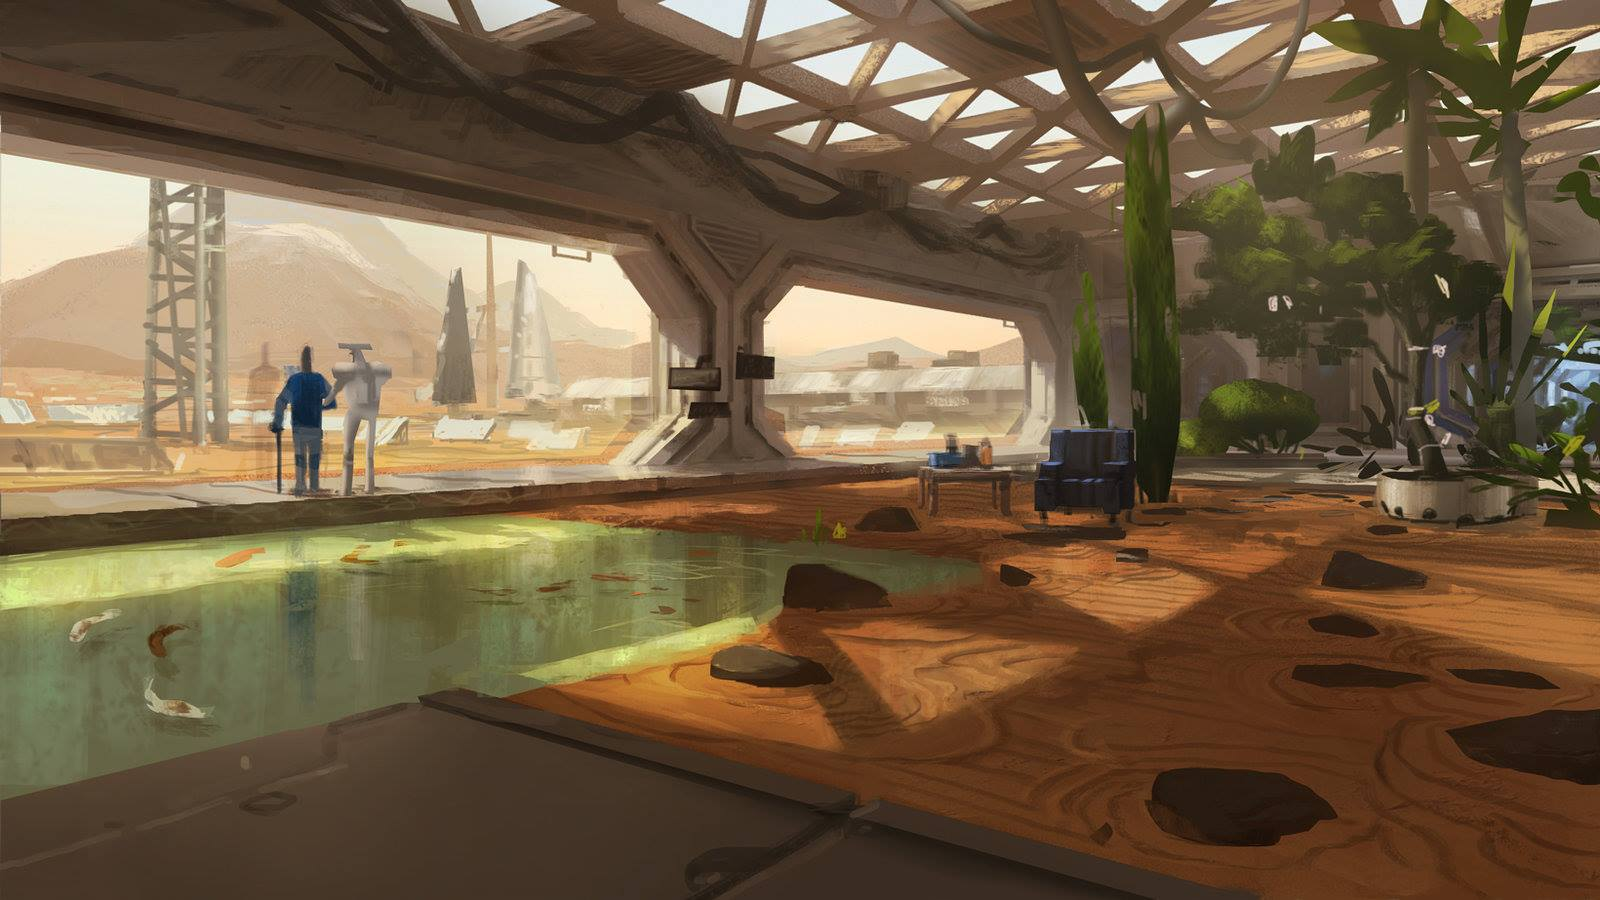 Mars station garden by Aka Kuro